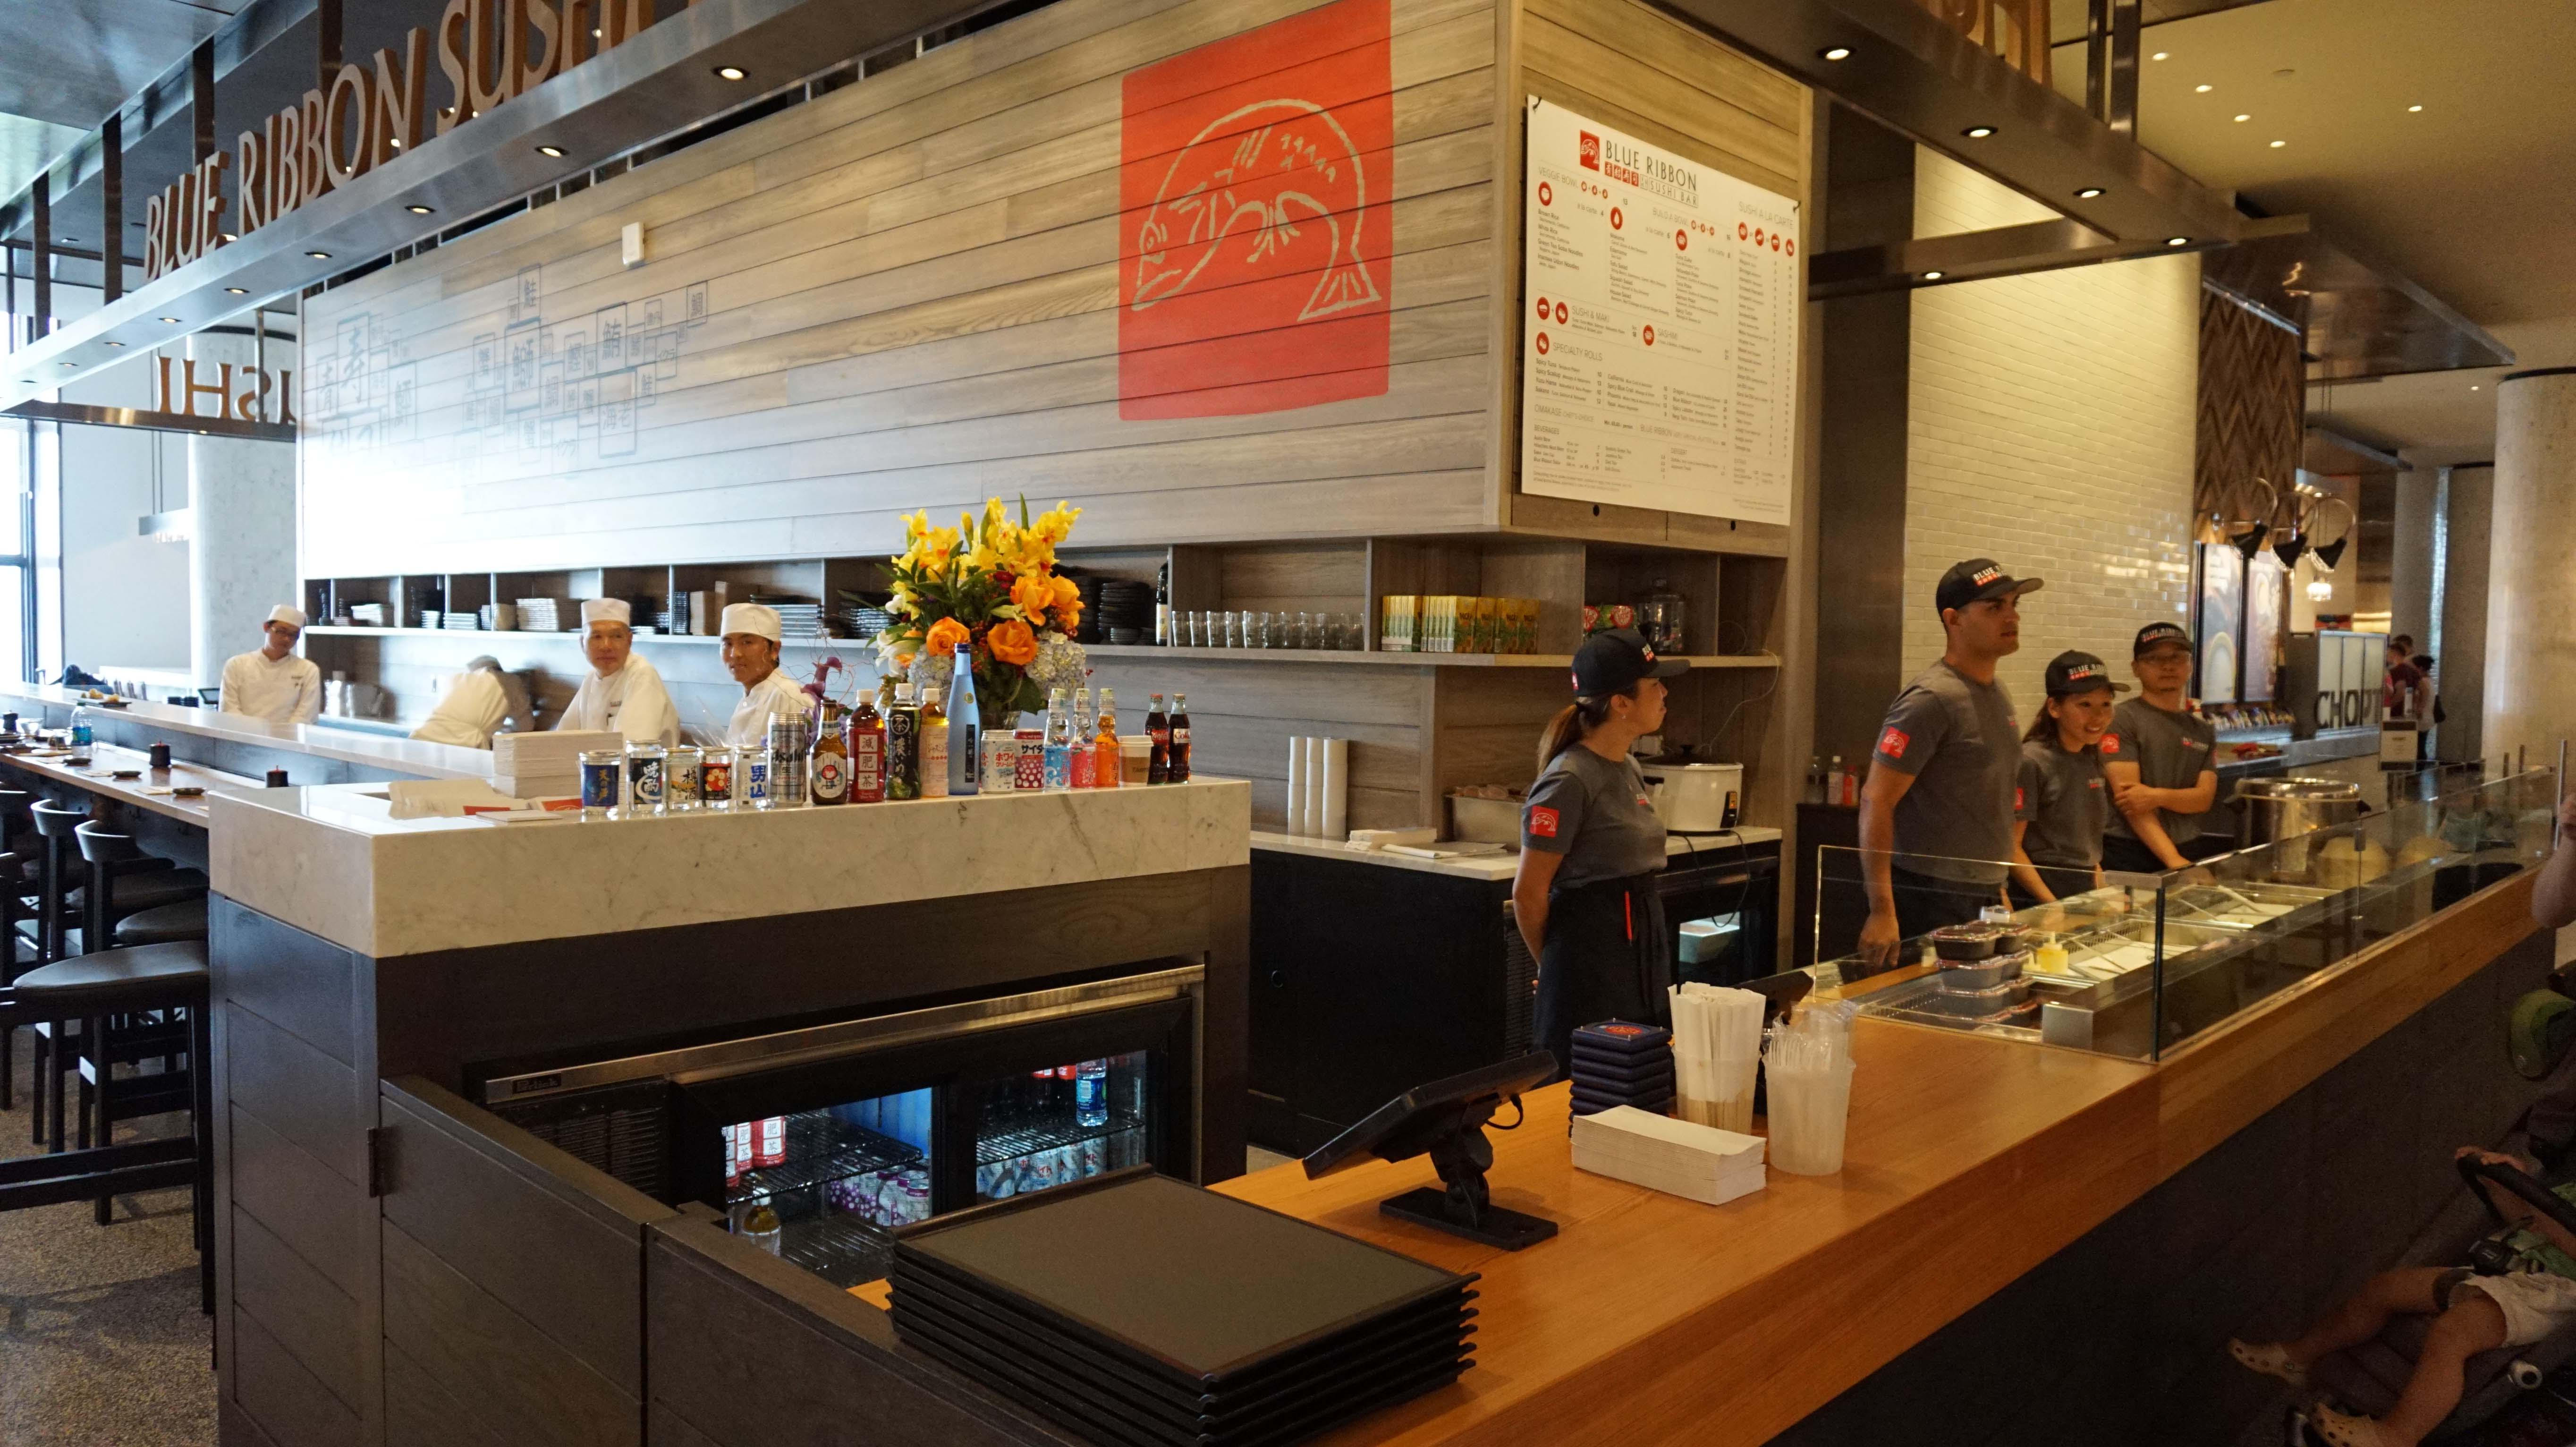 Hudson Eats Blue Ribbon Sushi Finally A Restaurant Arrives At Hudson Eats